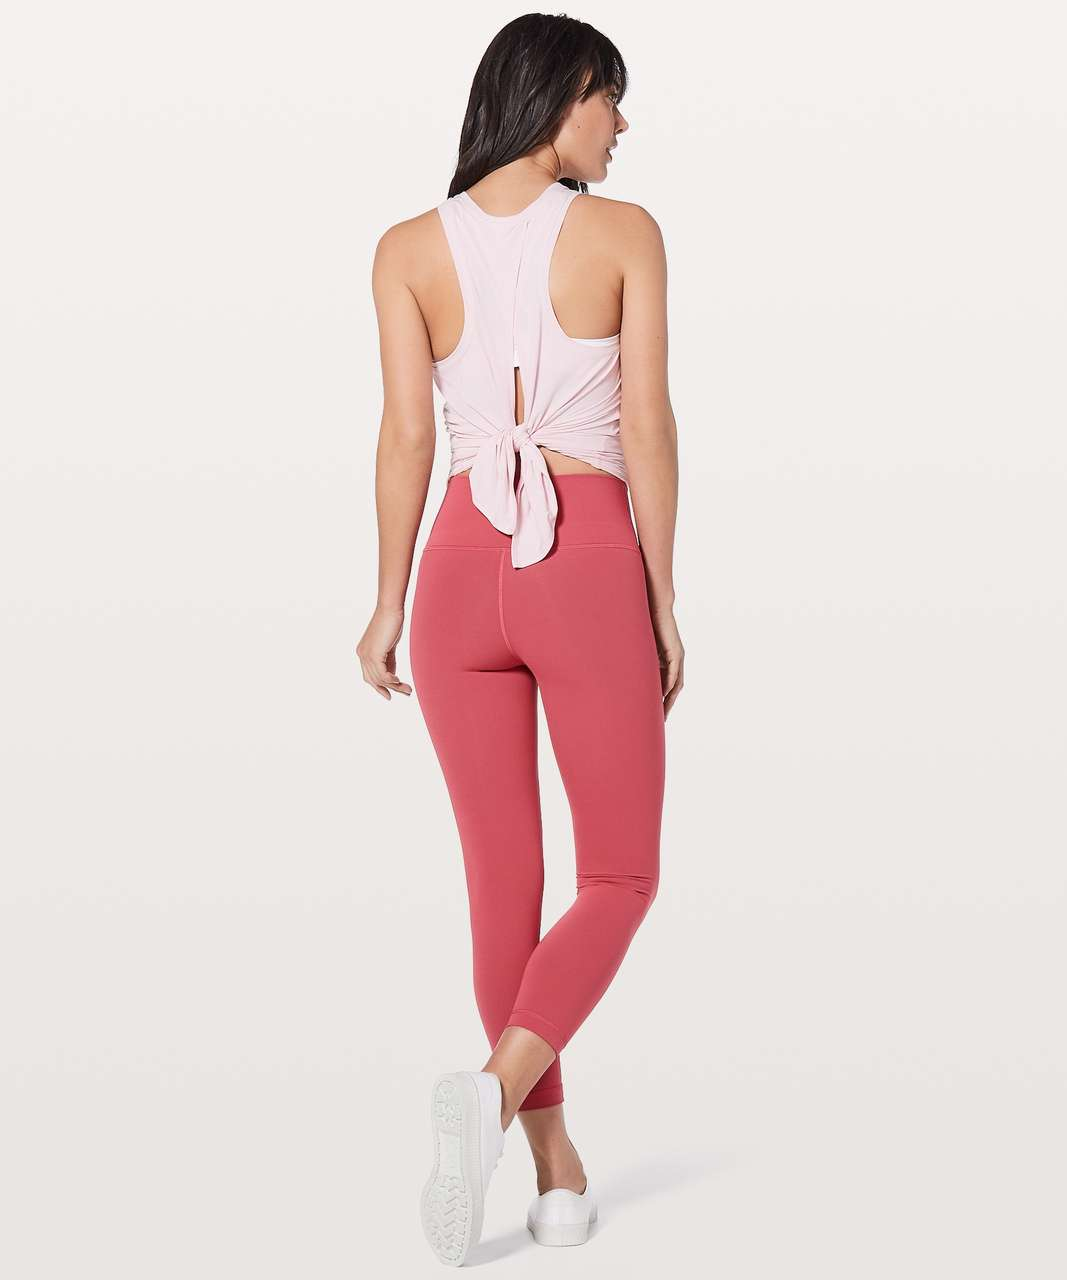 "Lululemon Wunder Under Hi-Rise 7/8 Tight 25"" - Vintage Rose"